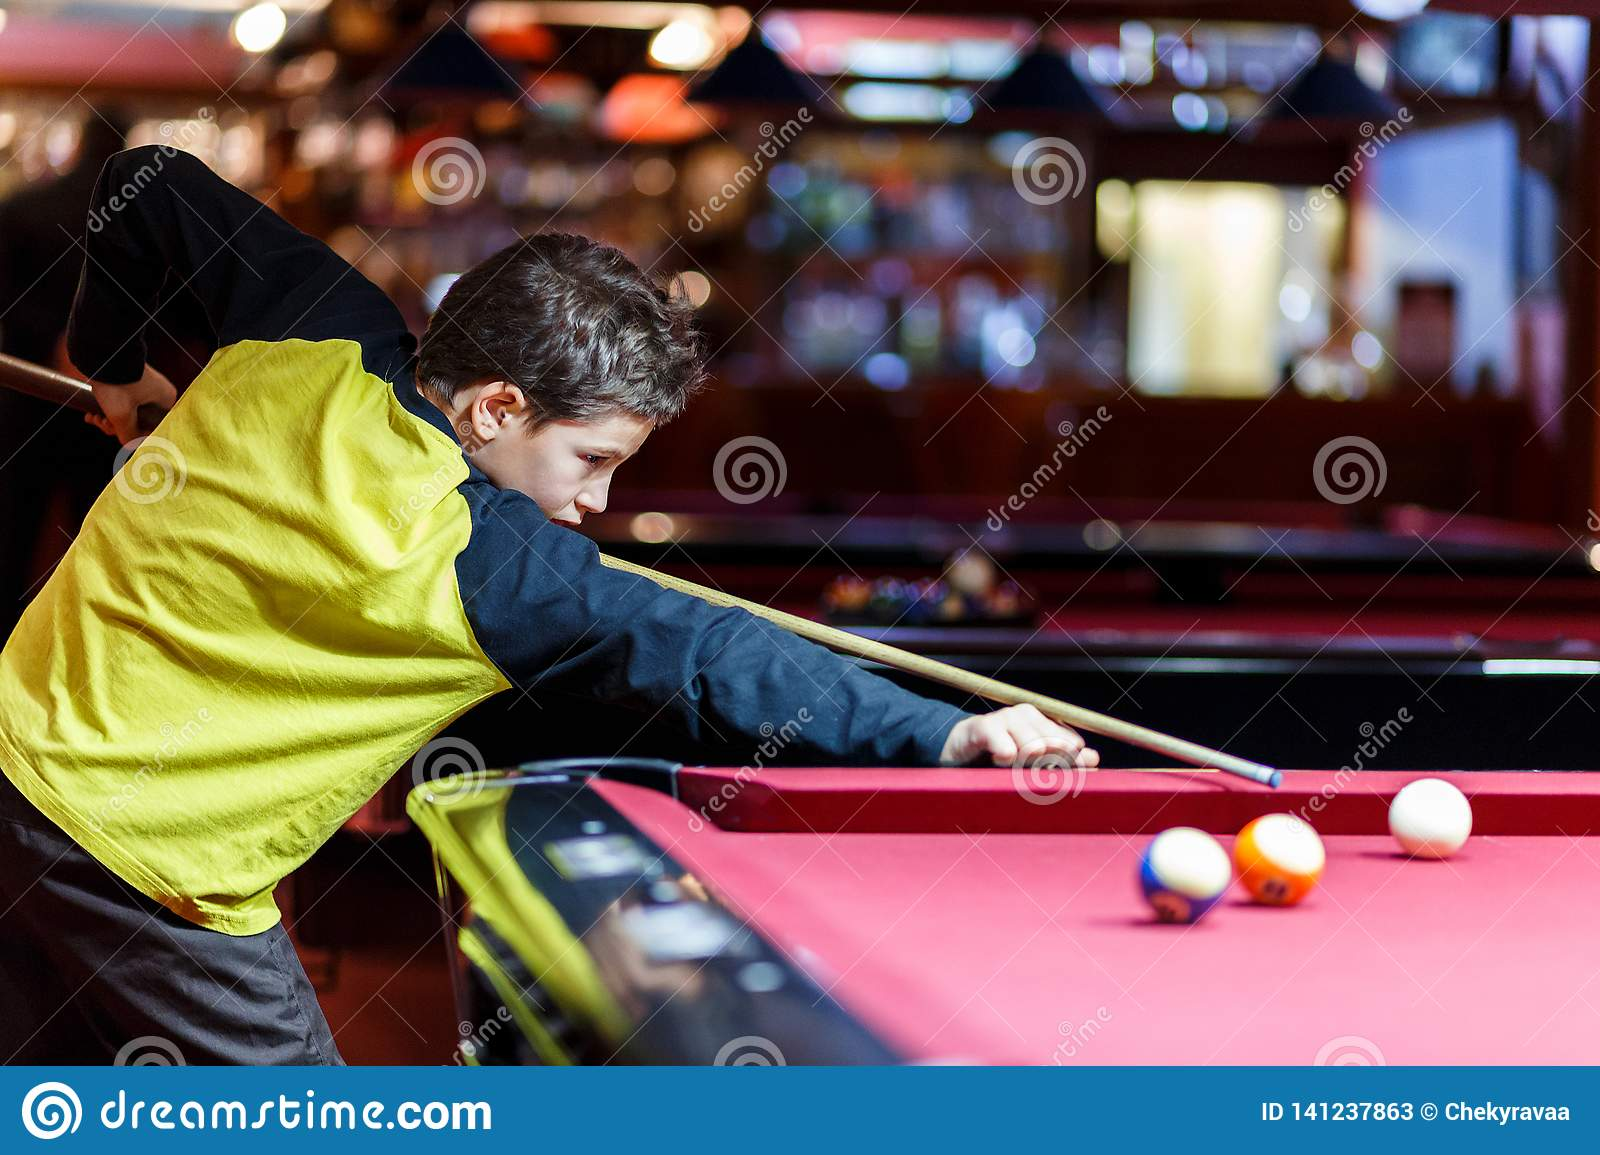 Cute boy in yellow t shirt plays billiard or pool in club. Young Kid learns to play snooker. Boy with billiard cue